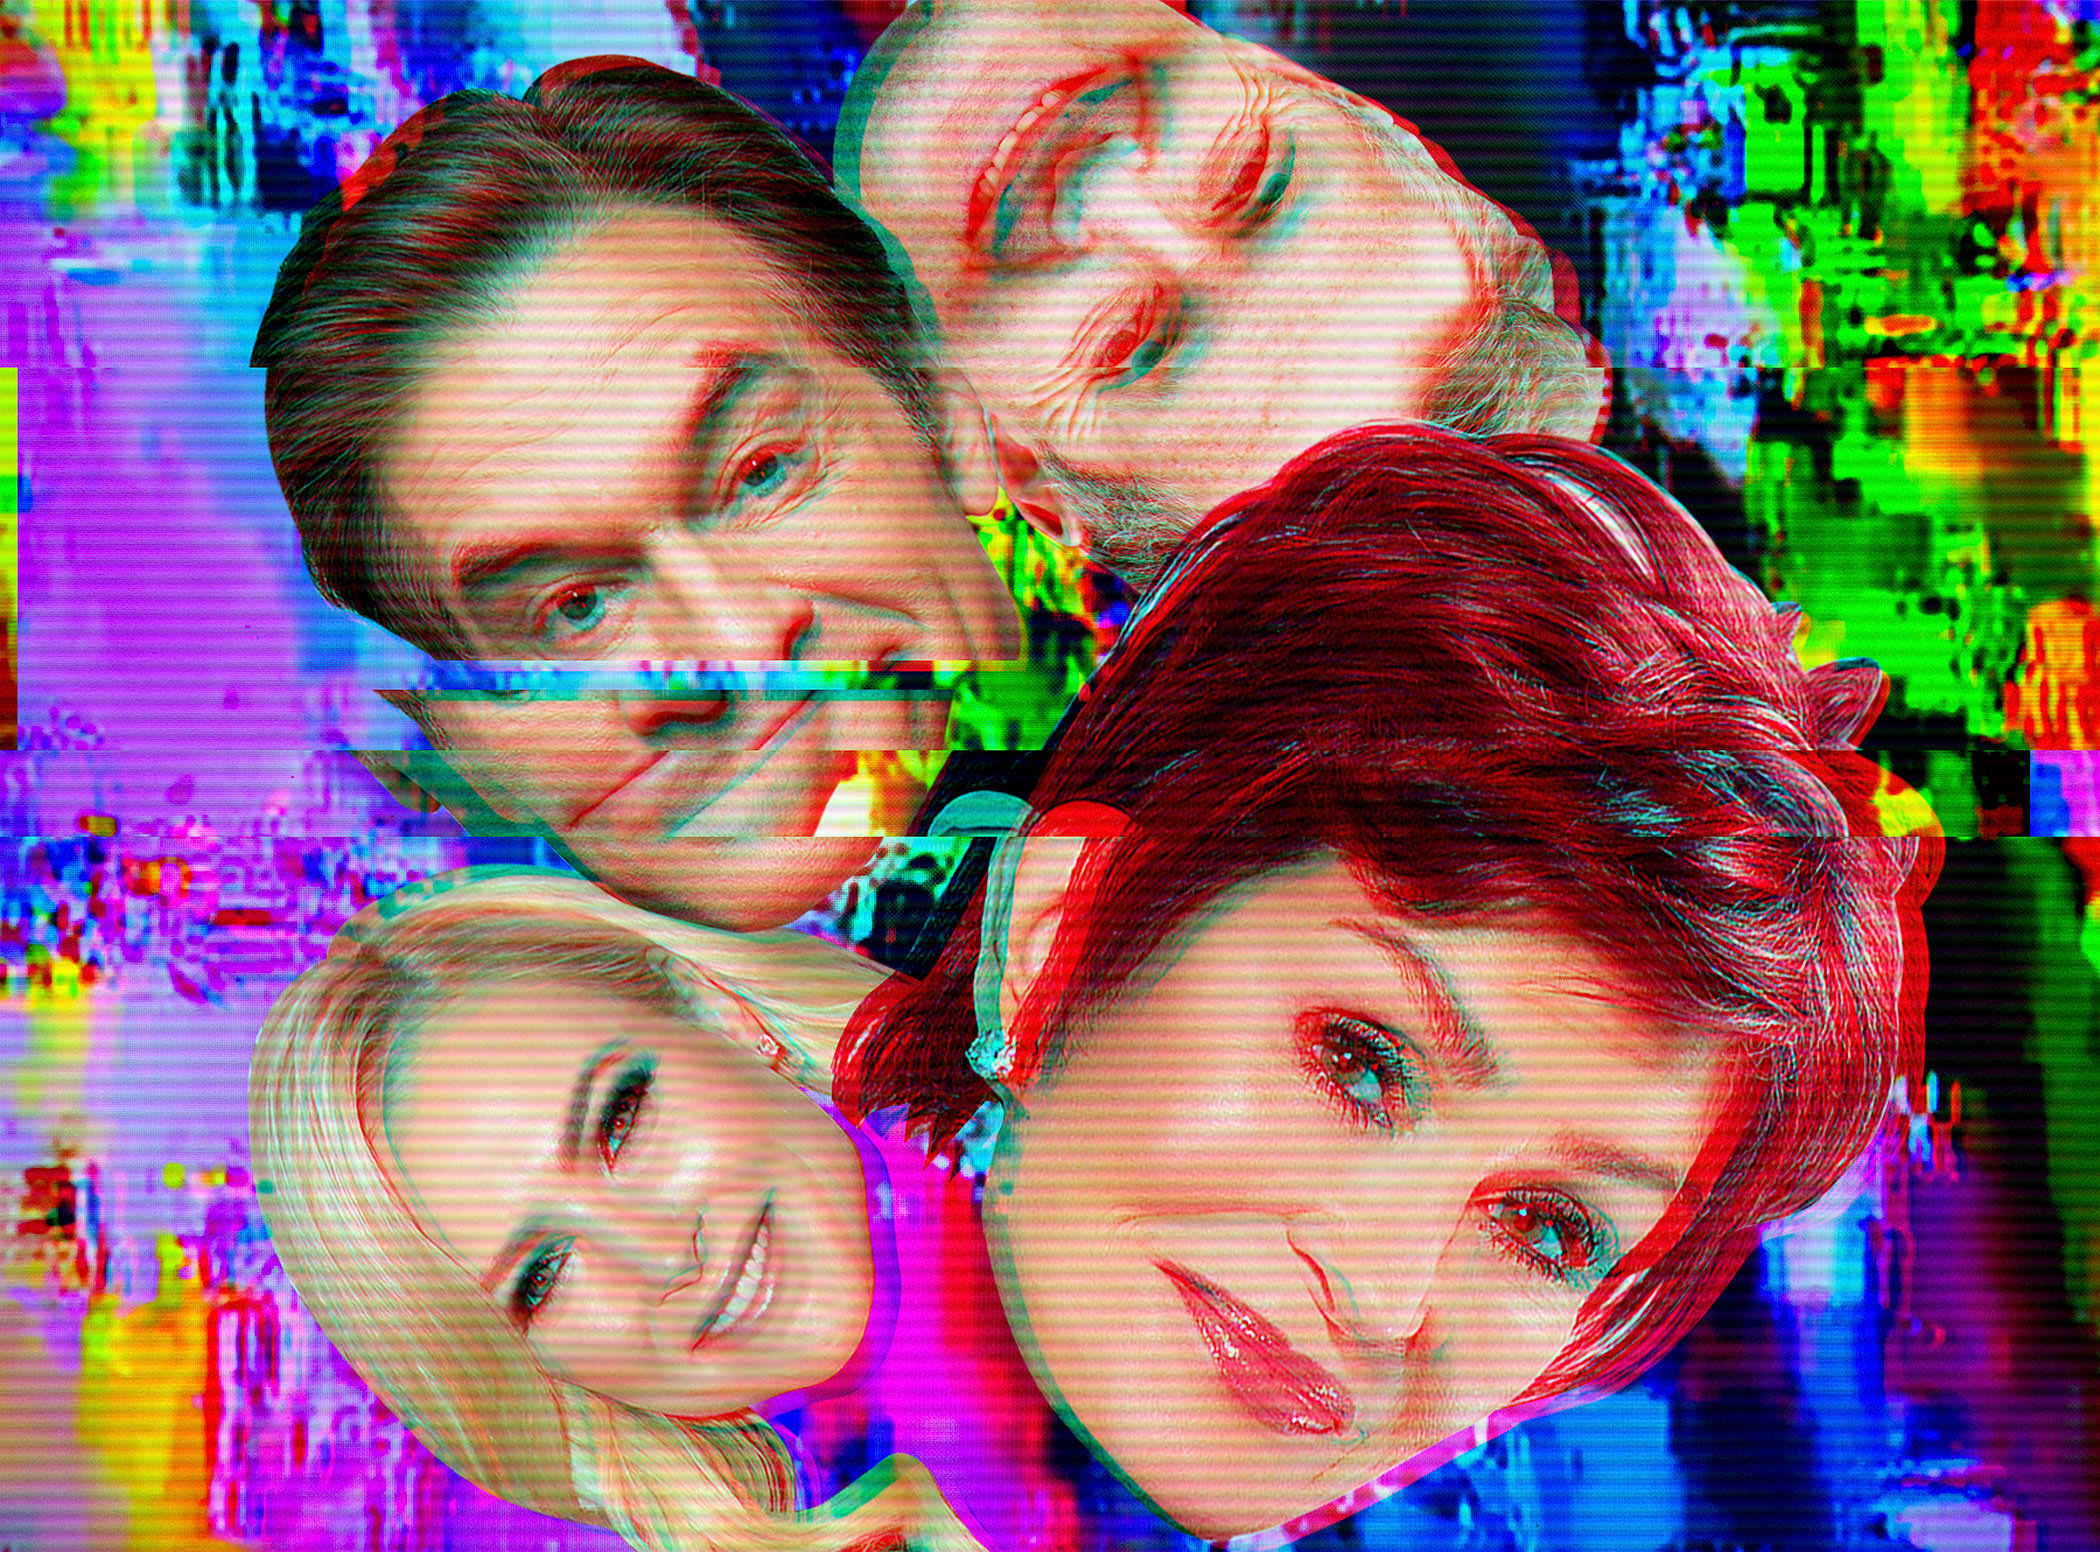 Clockwise from left: Dr. Oz, Piers Morgan, Sharon Osbourne and Meghan McCain